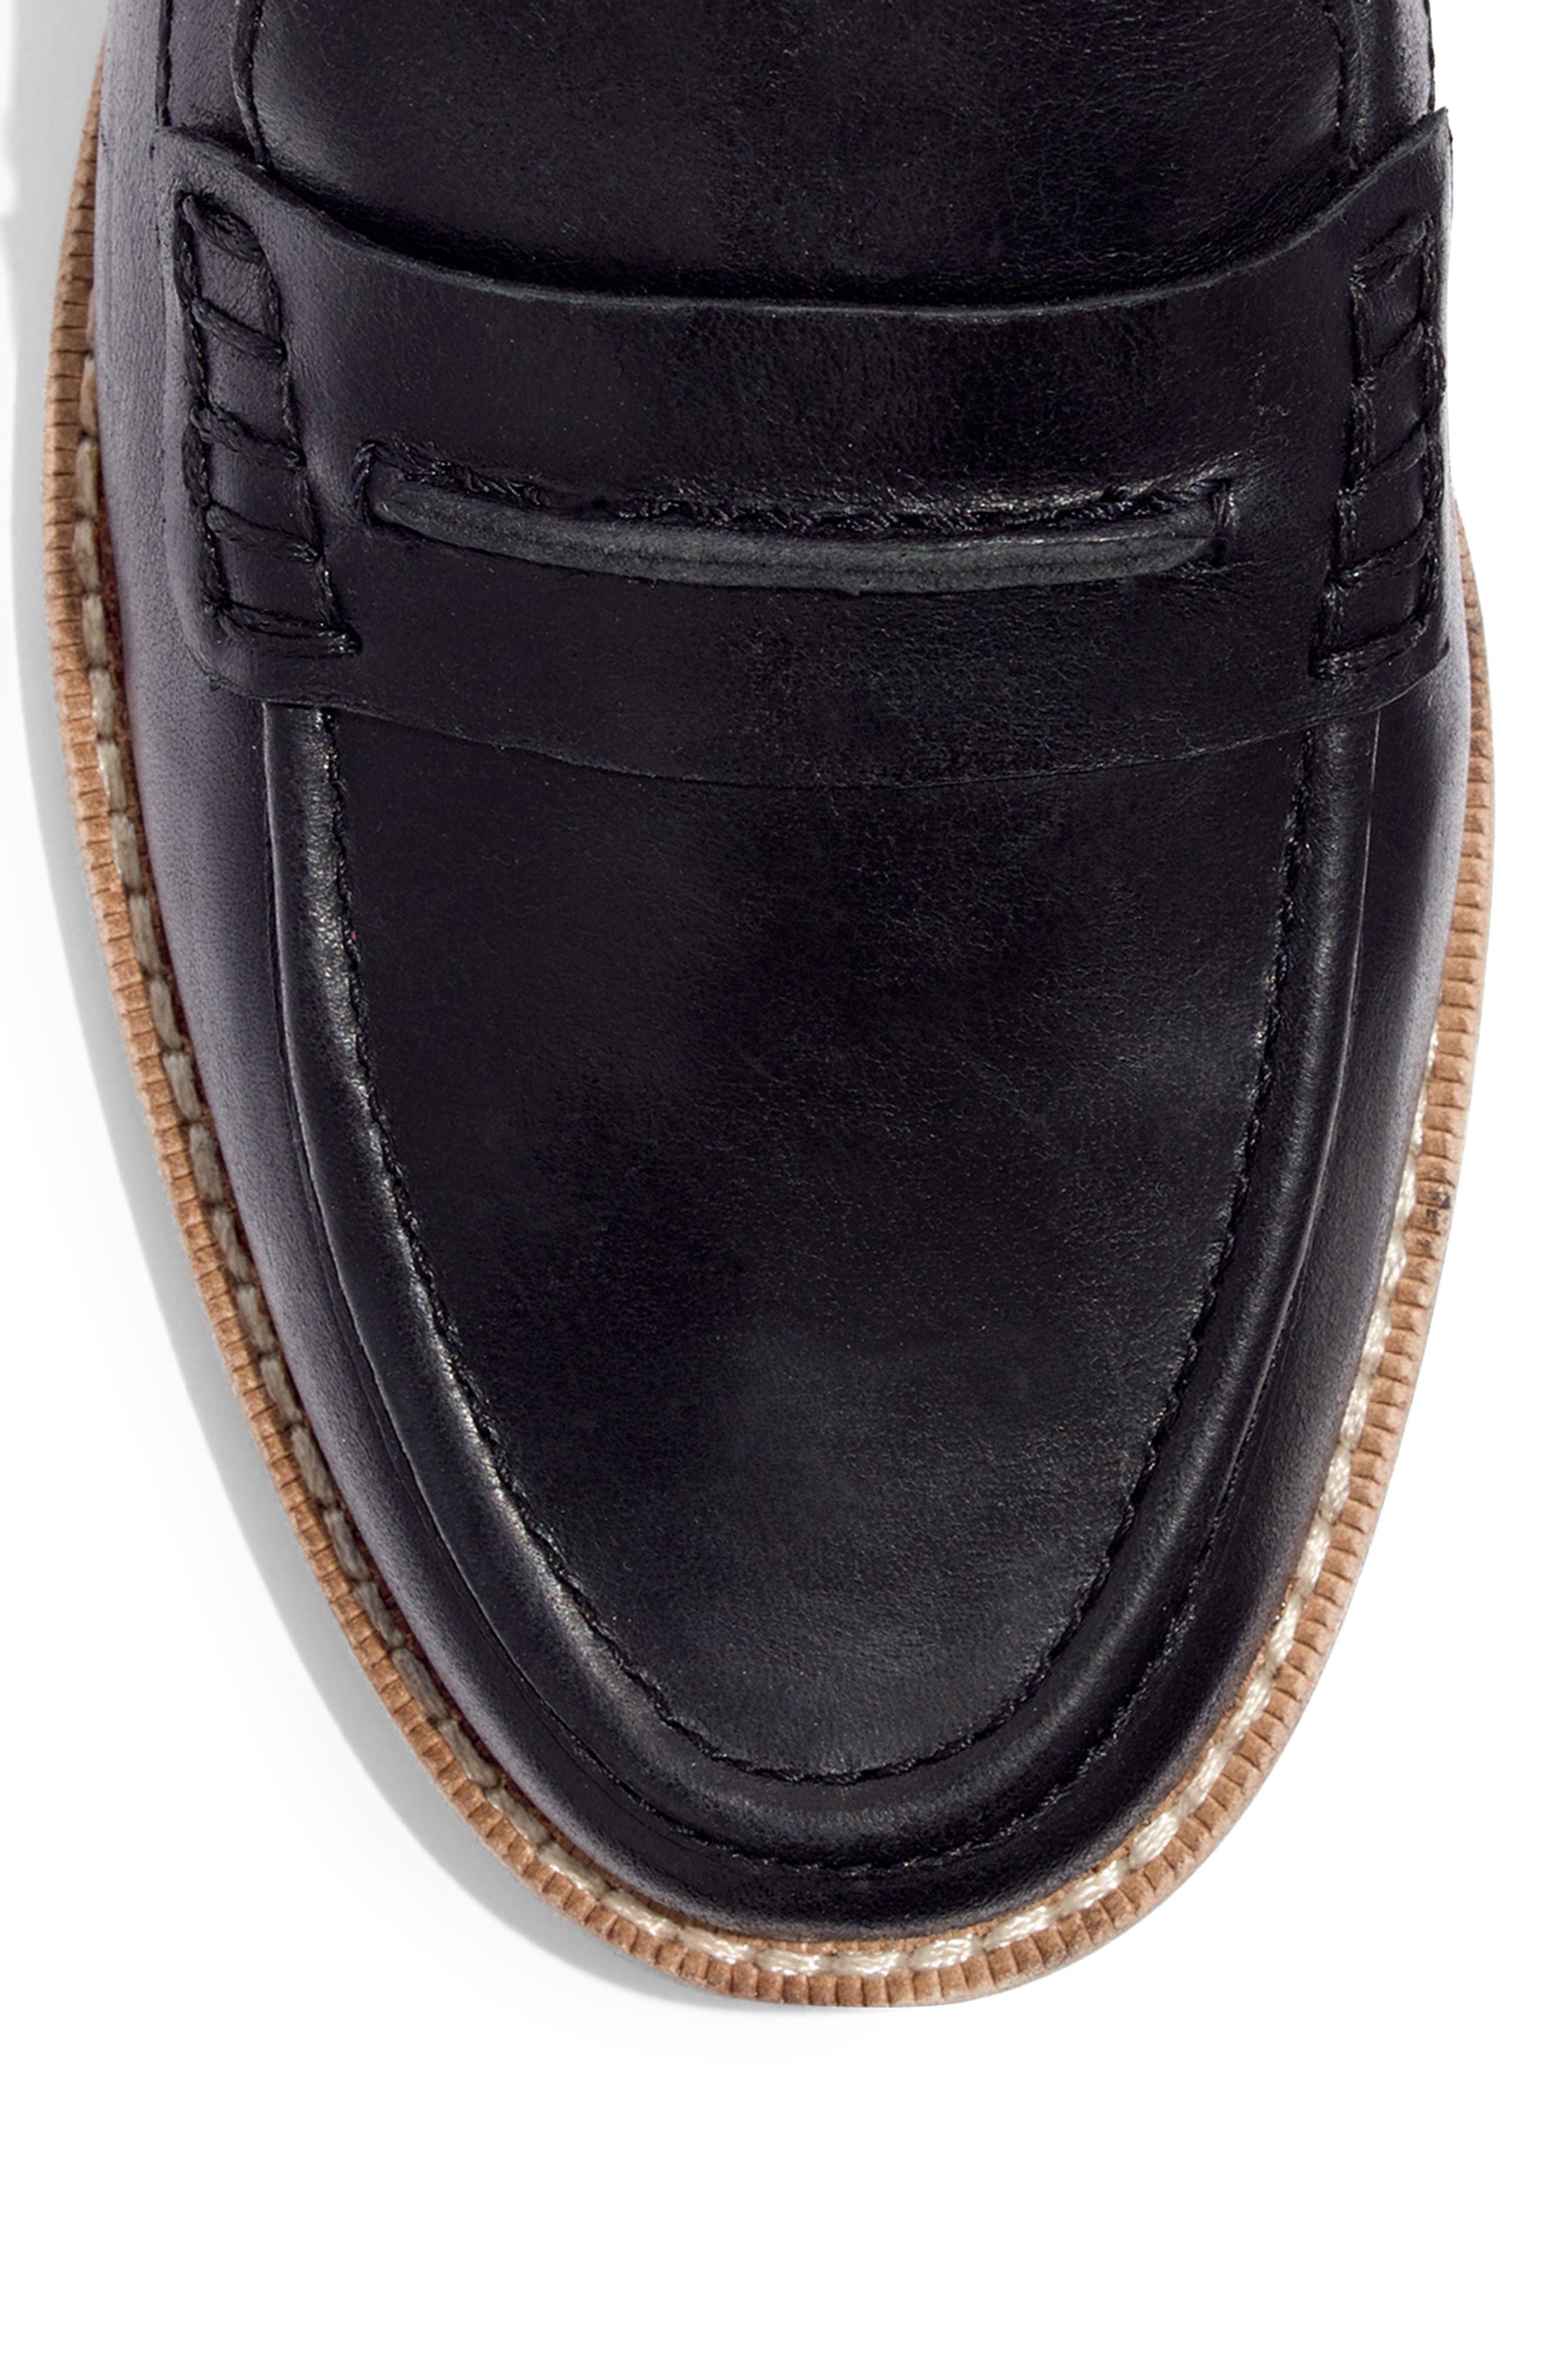 MADEWELL, The Elinor Loafer, Alternate thumbnail 7, color, BLACK LEATHER